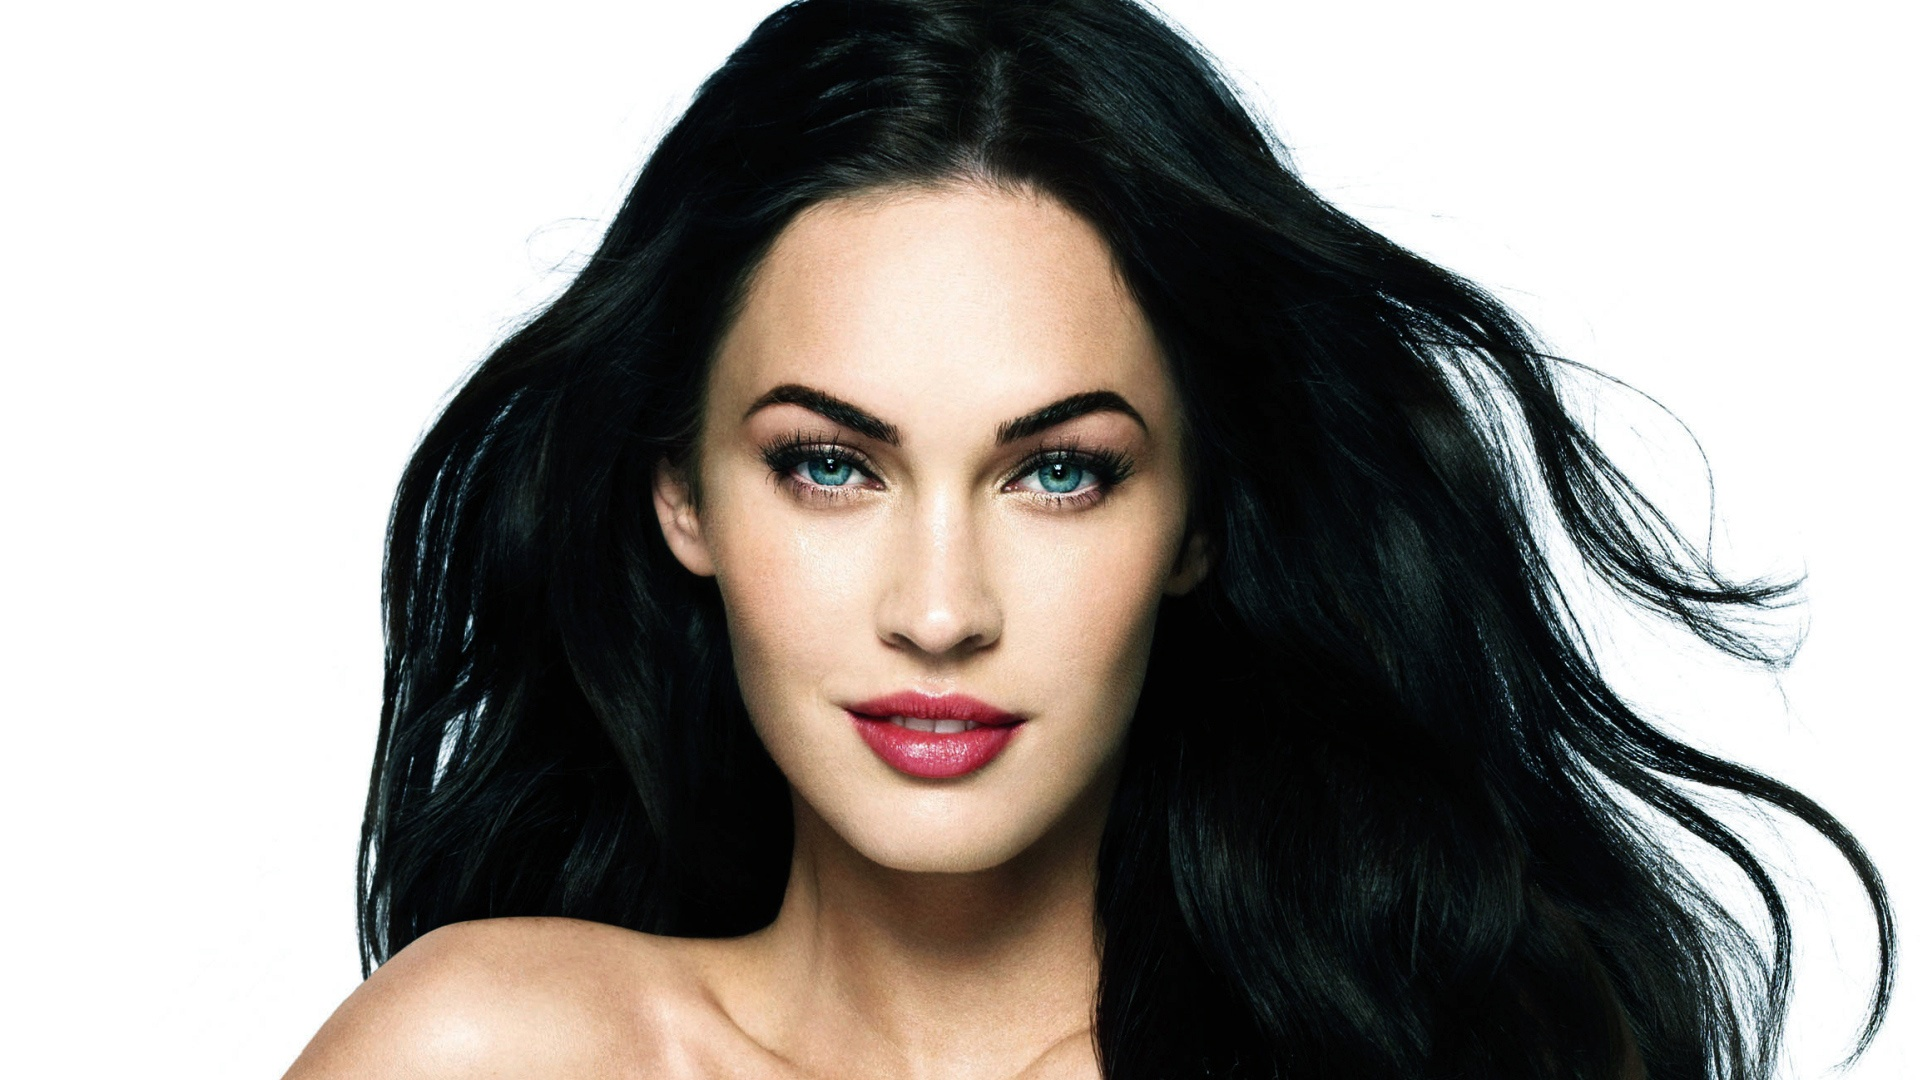 megan fox wallpapers hd A22